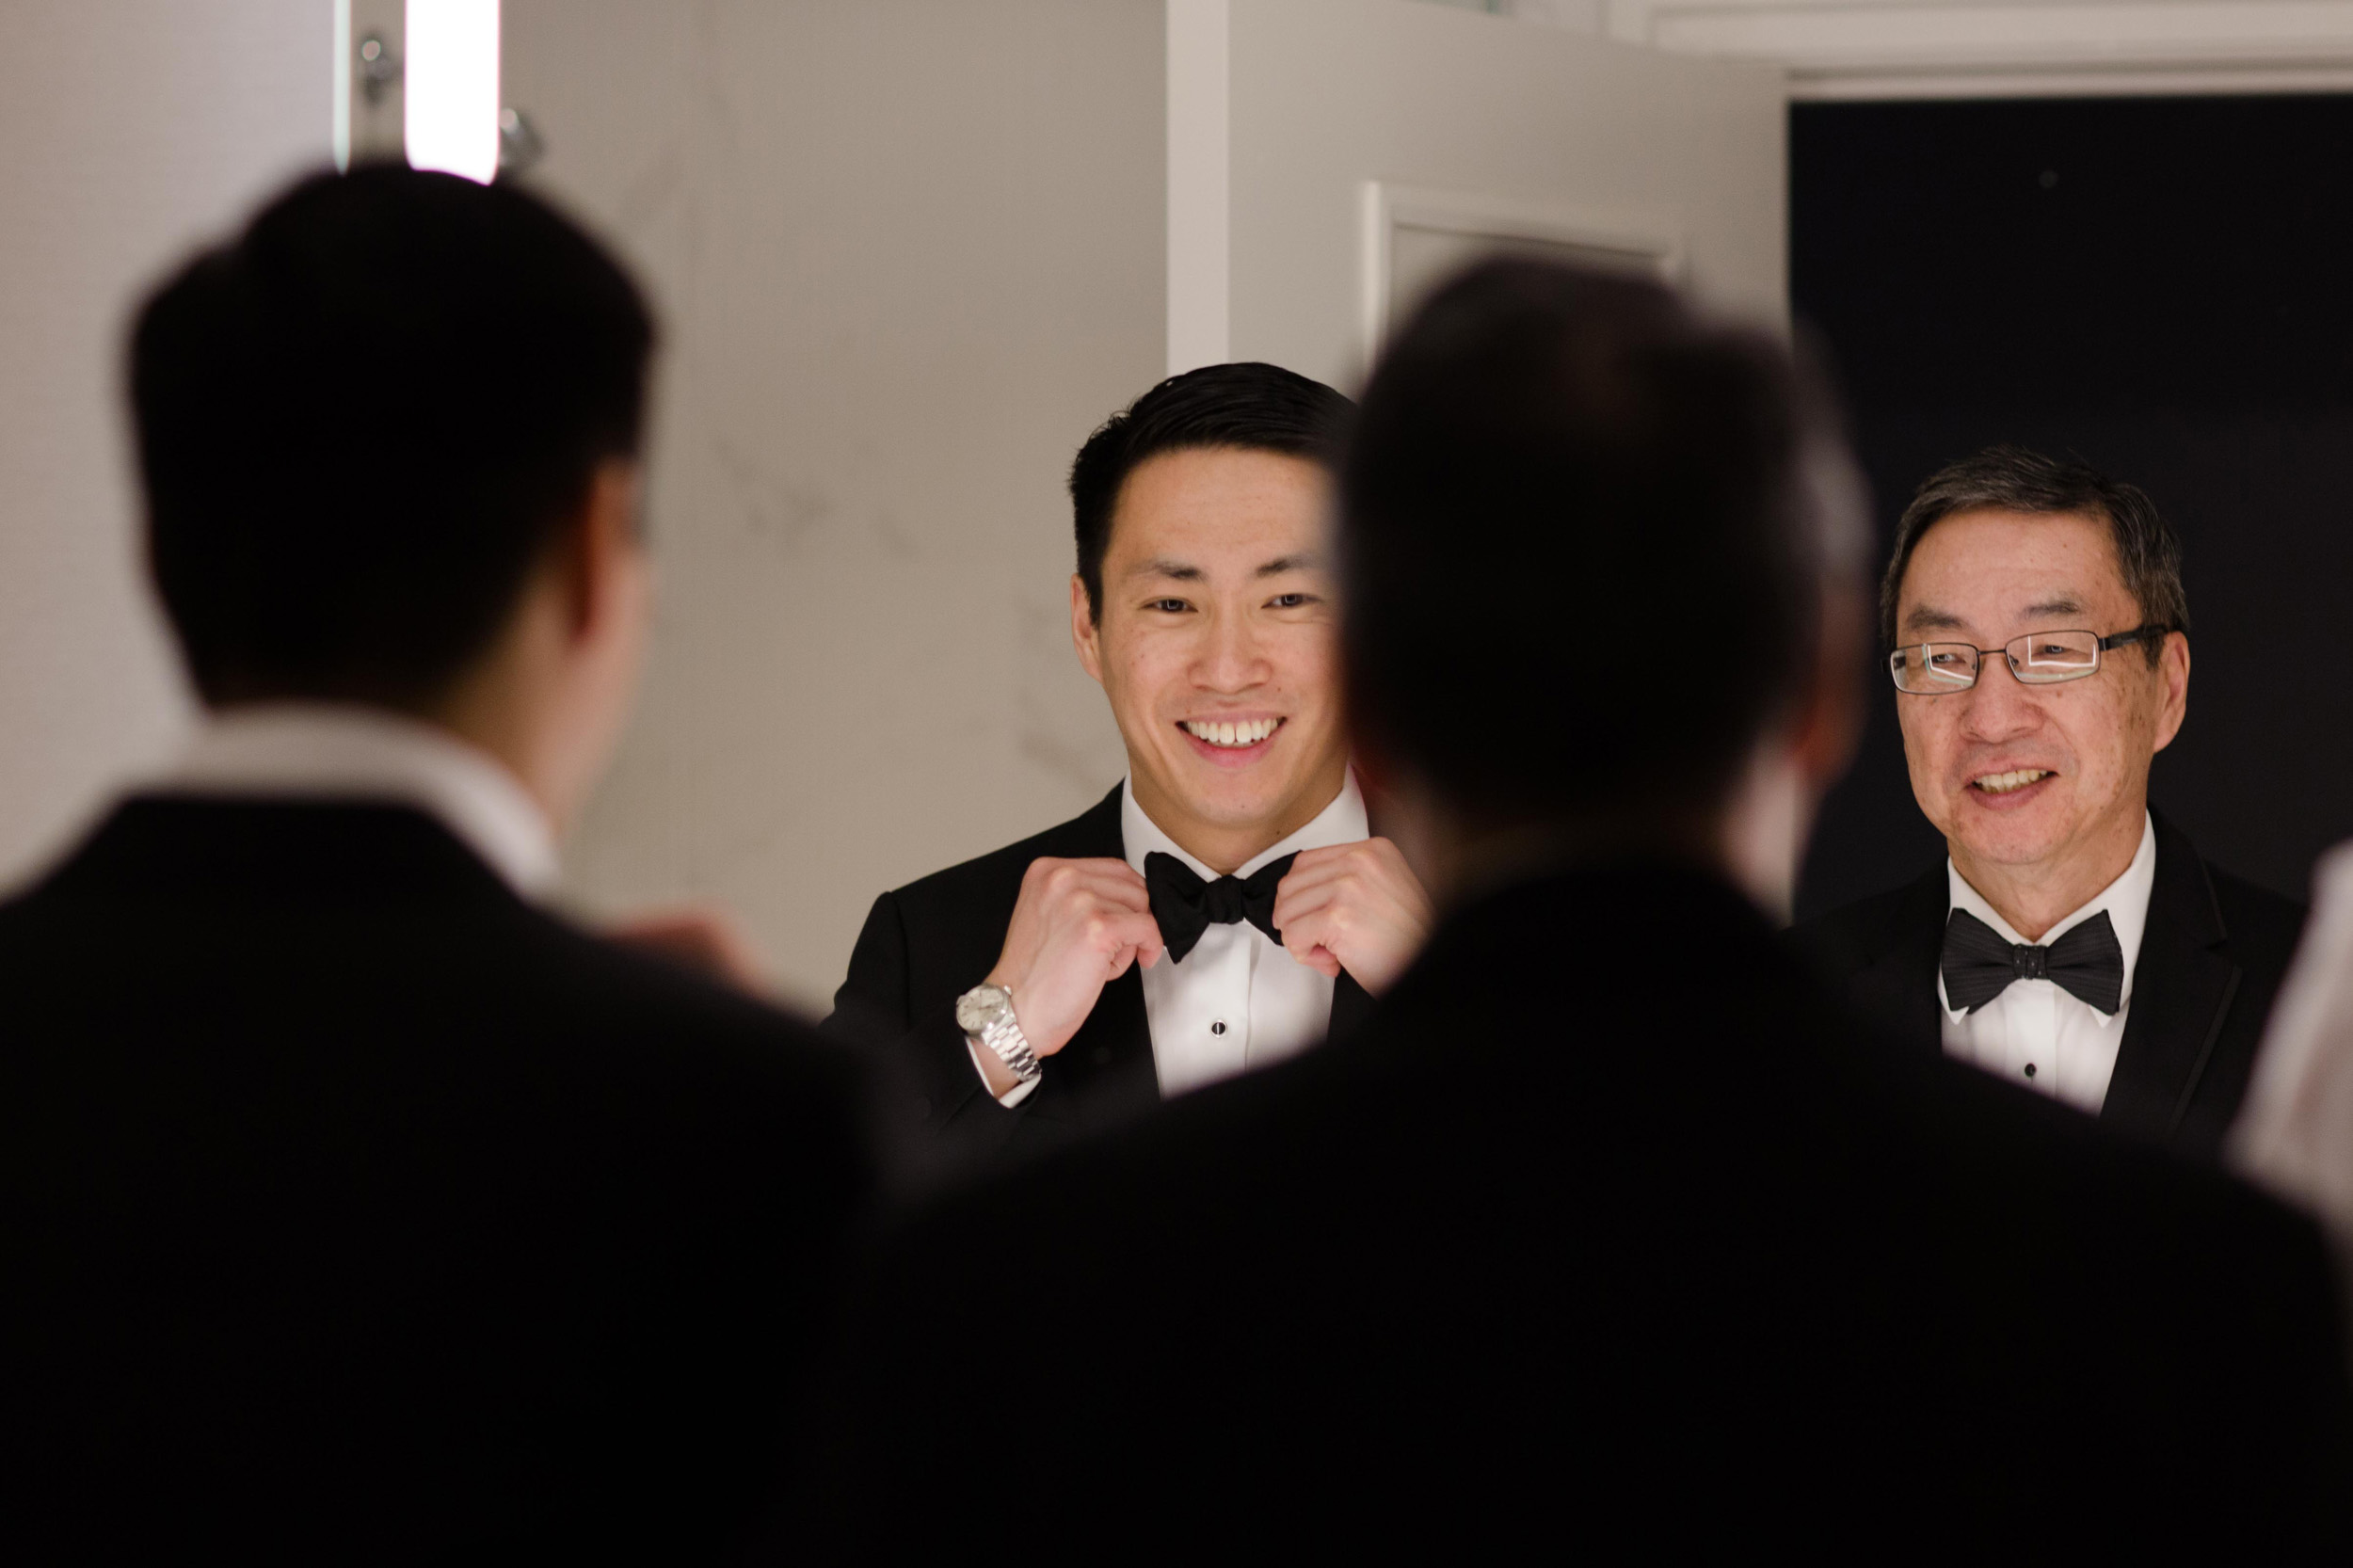 Groom gets ready for wedding at Art Institute of Chicago